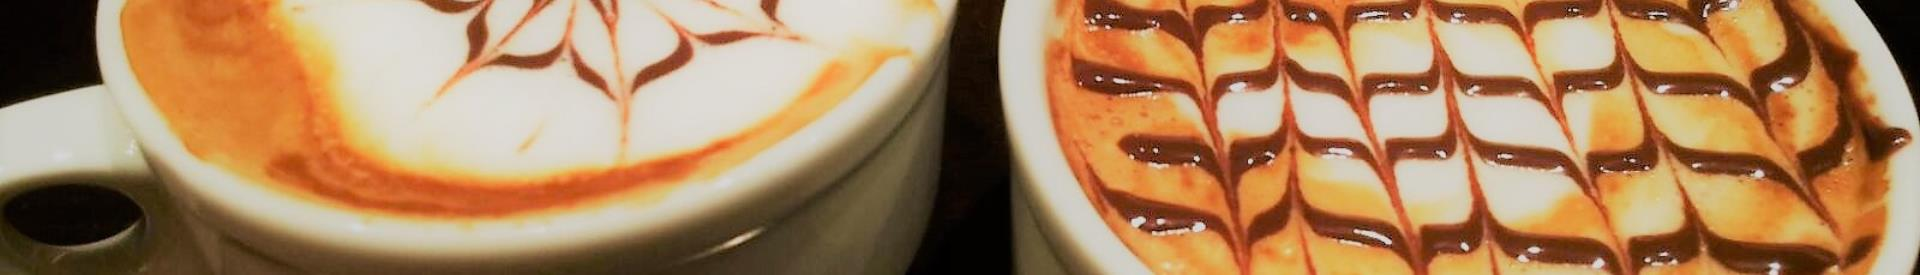 Our delicious cappuccinos will help you start your day